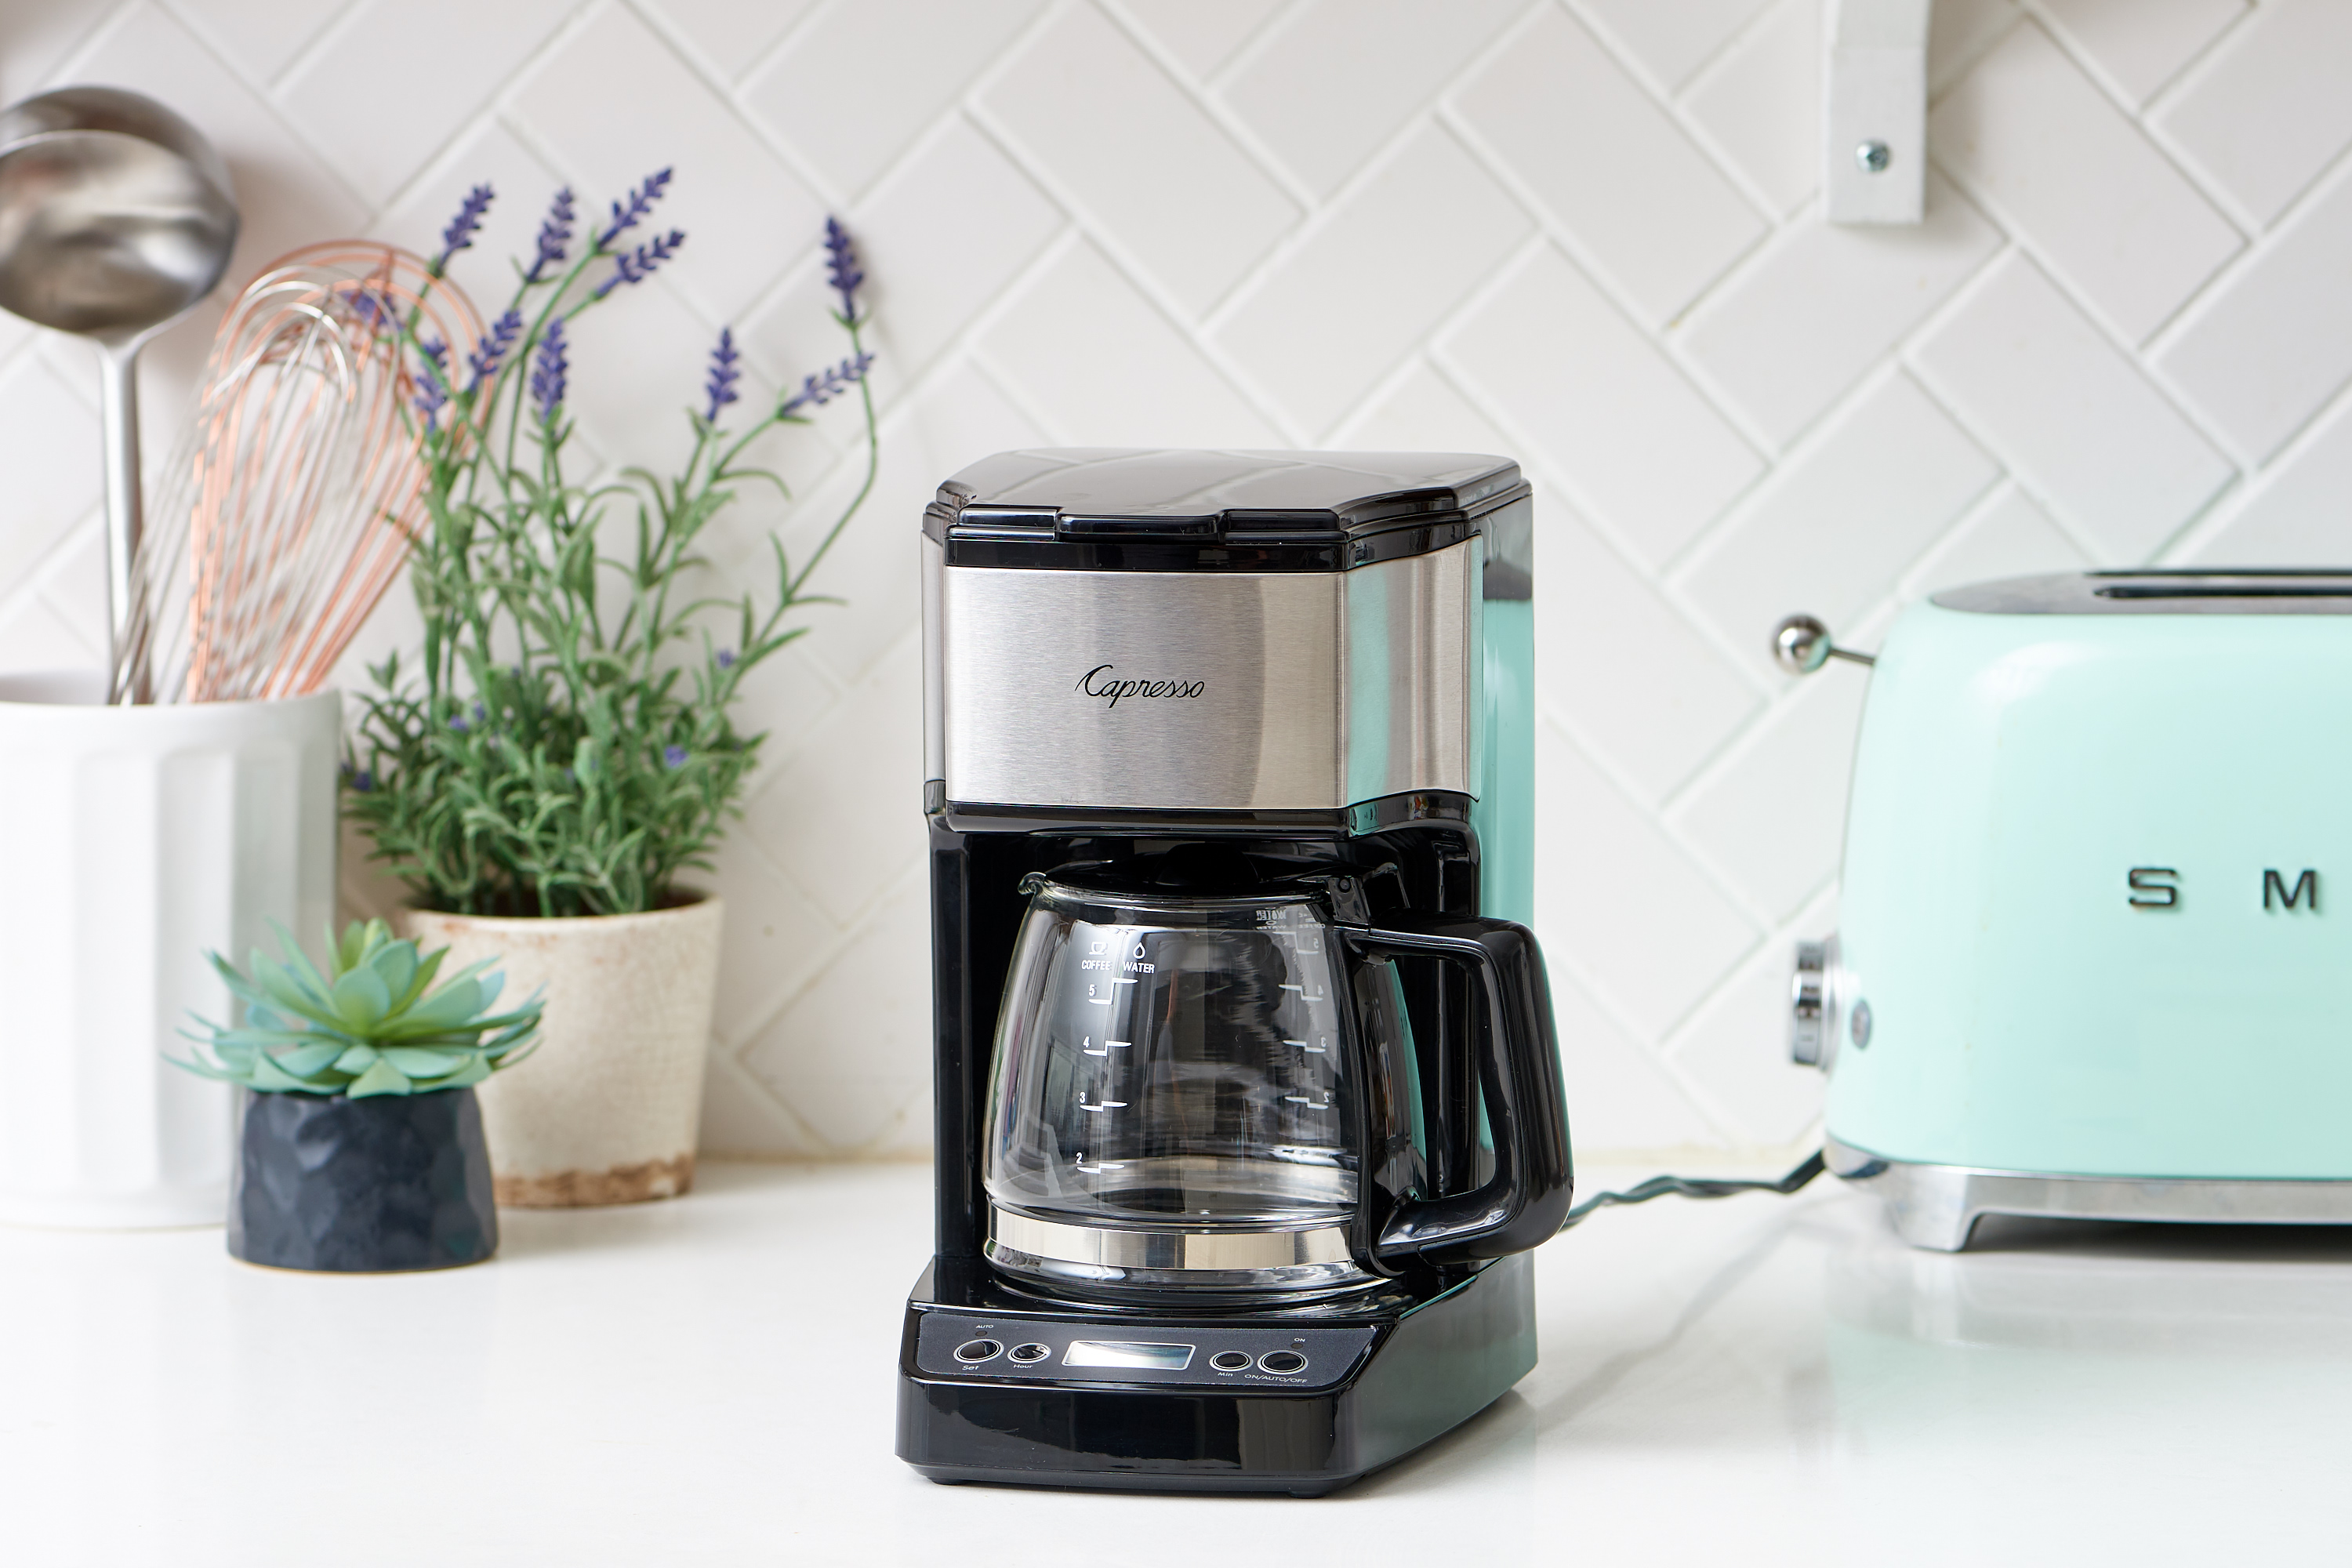 How To Descale a Coffee Maker | Kitchn